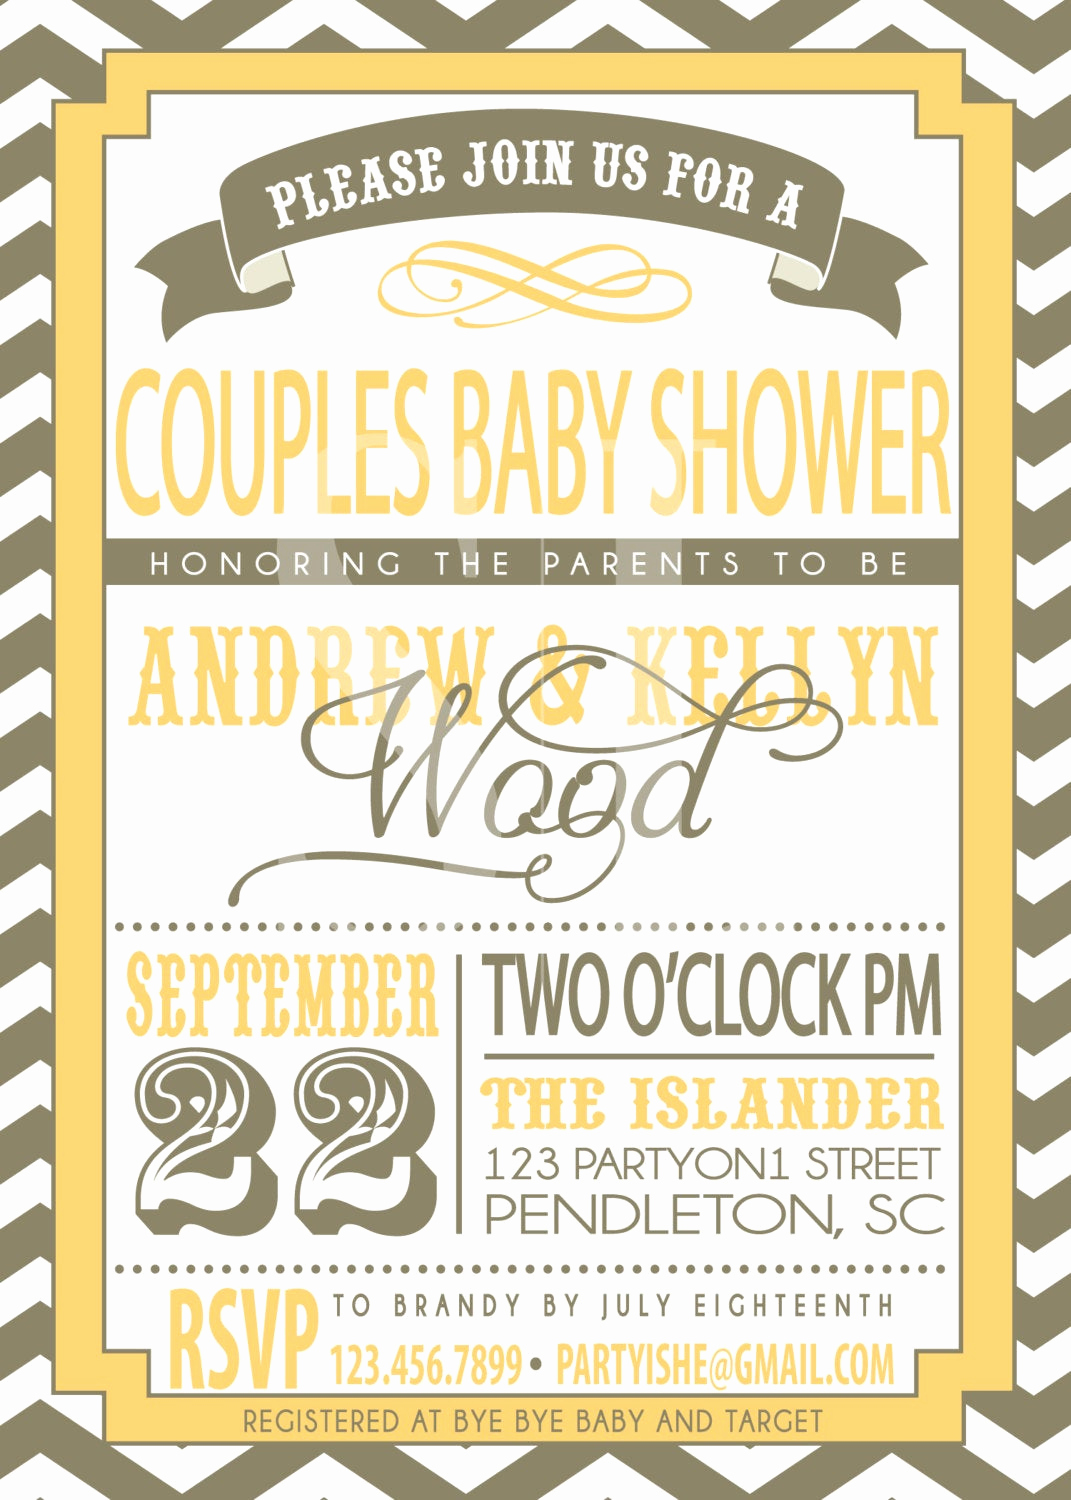 Couples Shower Invitation Templates New Couples Baby Shower Invitation